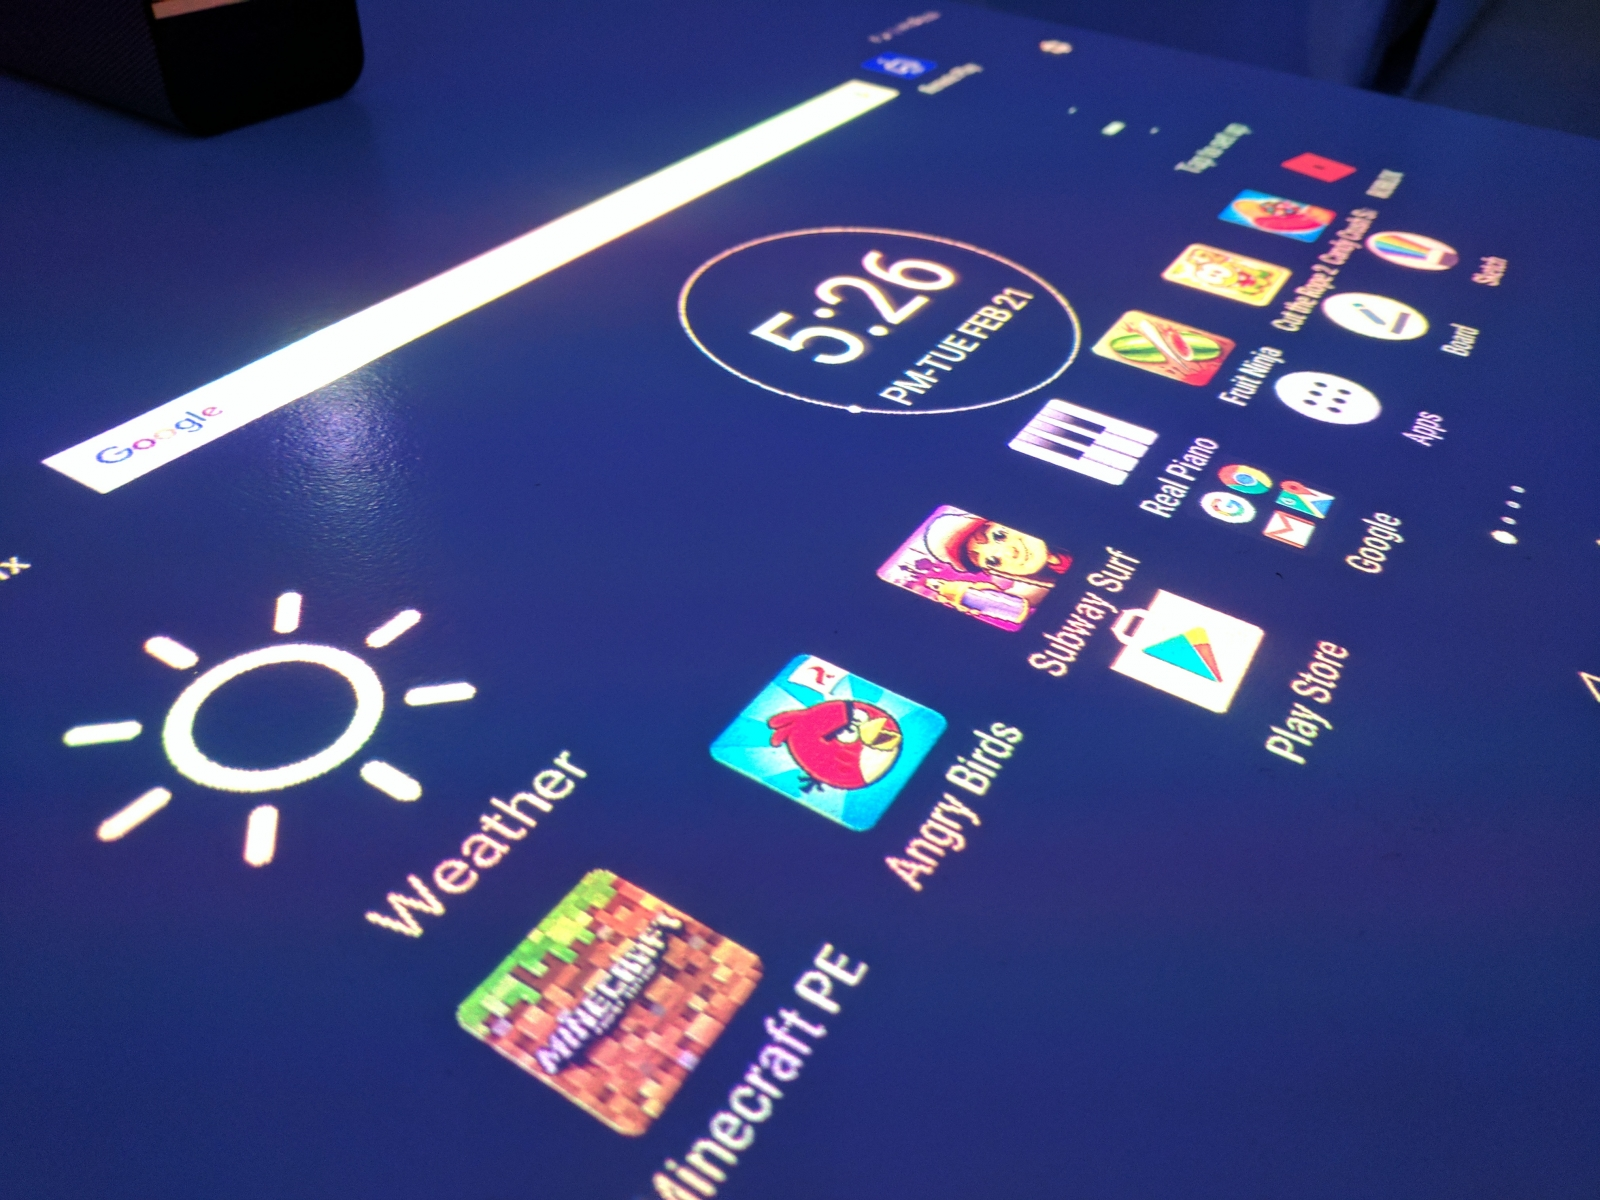 Xperia Touch short throw projector display